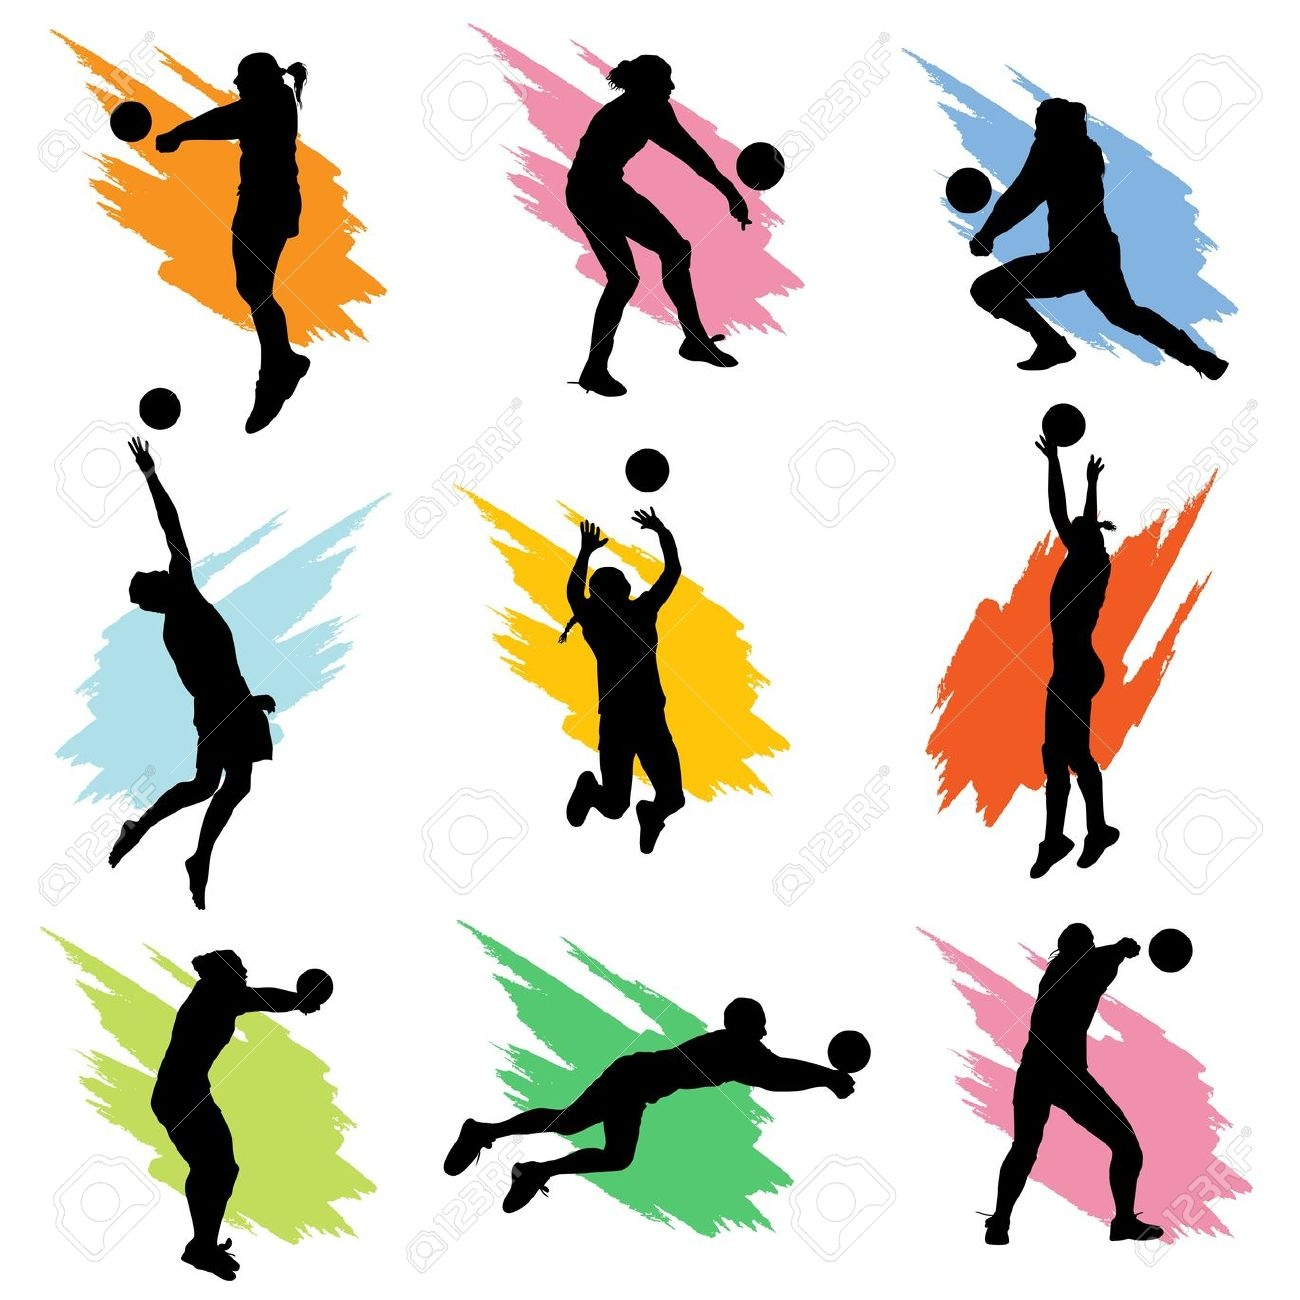 Action clipart volleyball. Players in station